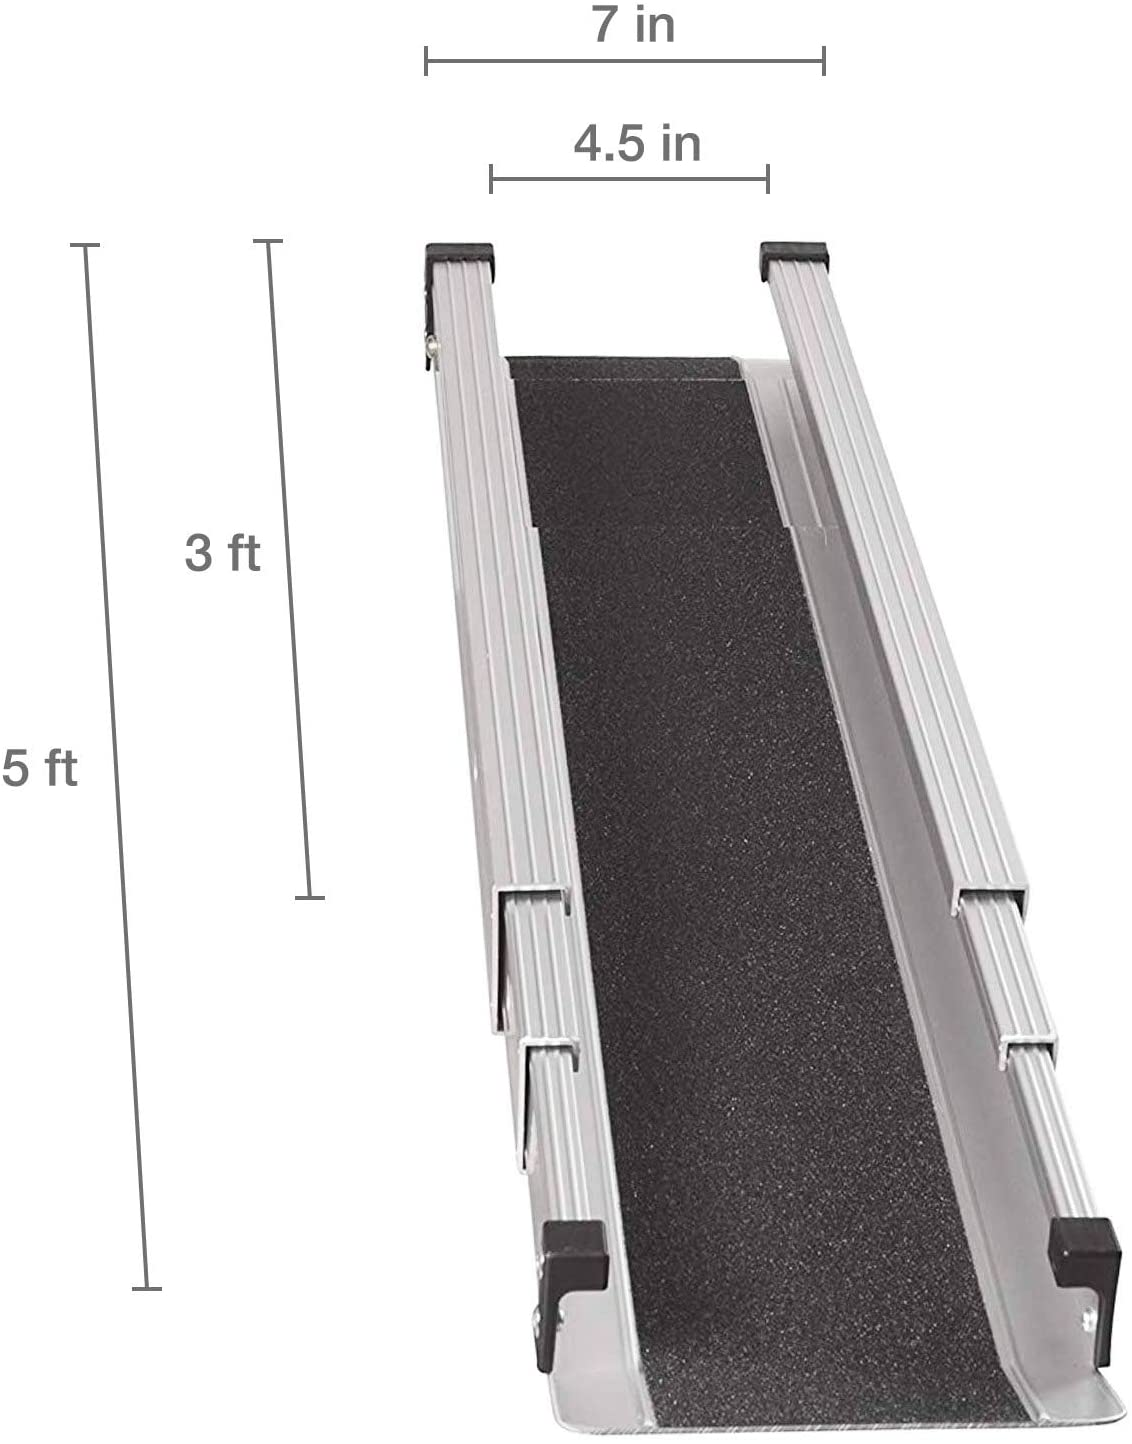 MABIS DMI Healthcare Portable Wheelchair Ramp/Threashold Ramp, Adjustable, Telescoping, Retractable, and Lightweight Loading Ramp with Cover, Silver: Health & Personal Care